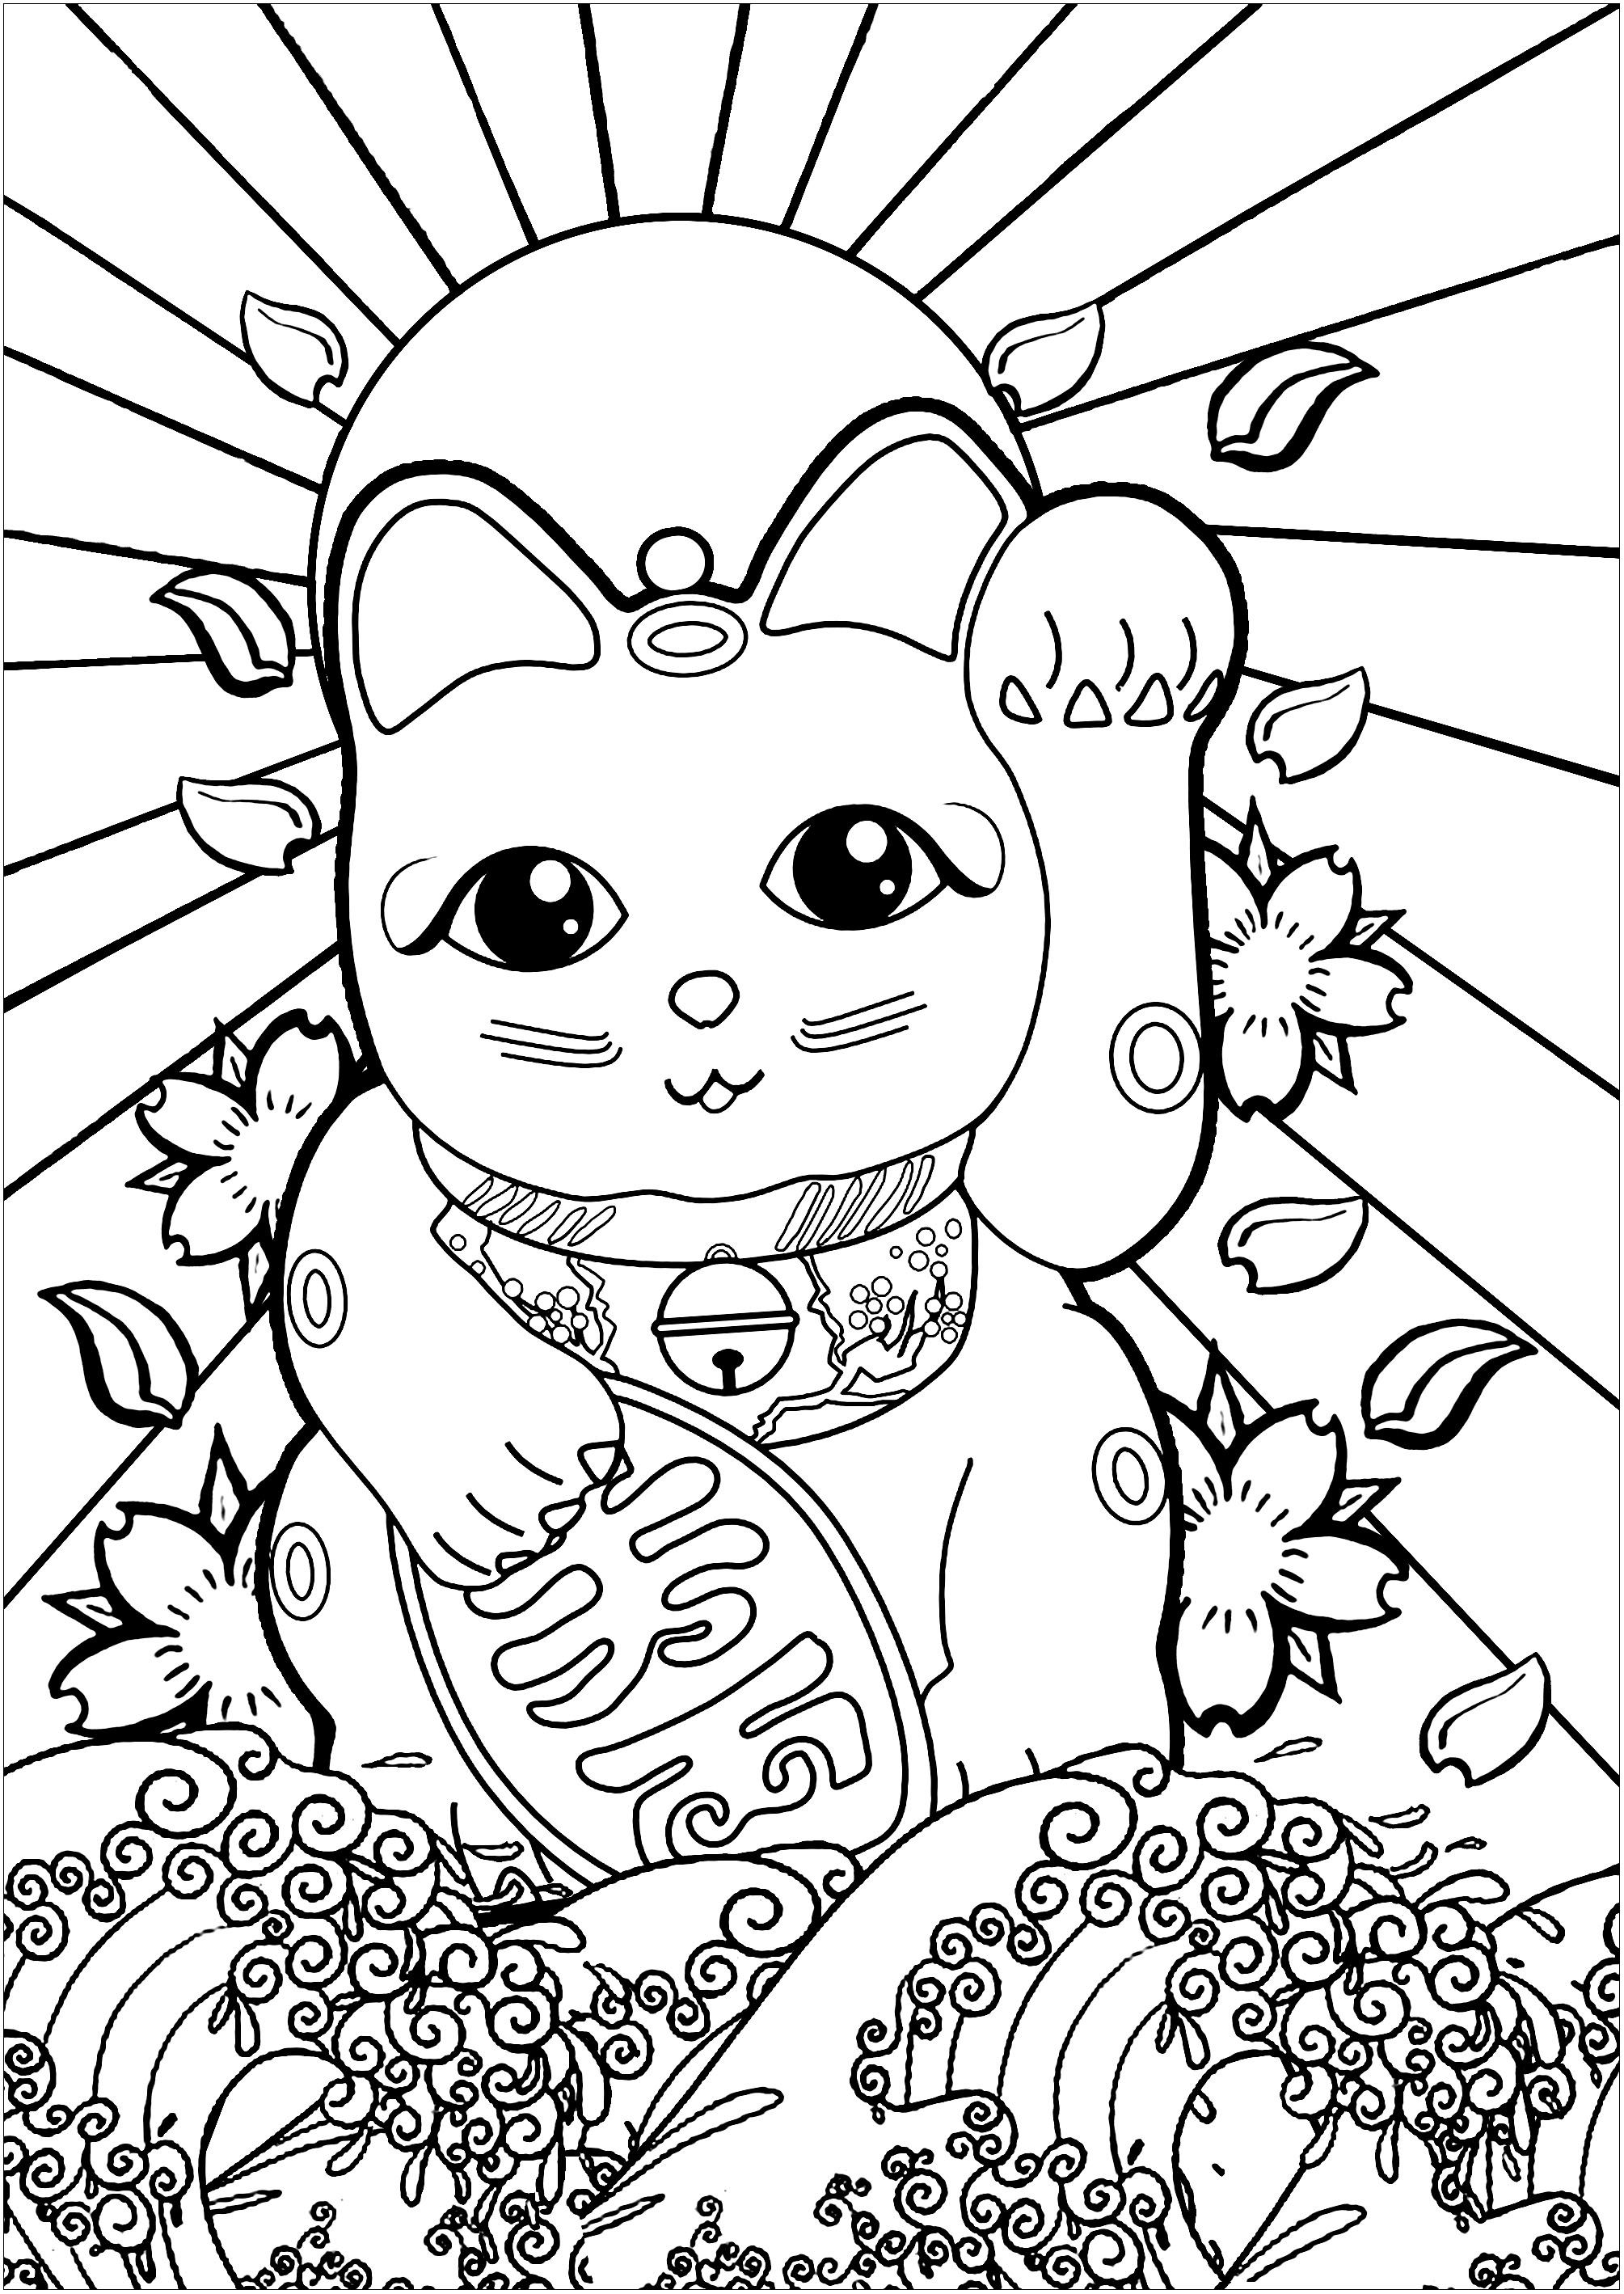 Maneki Neko And The Great Wave Japan Coloring Pages For Adults